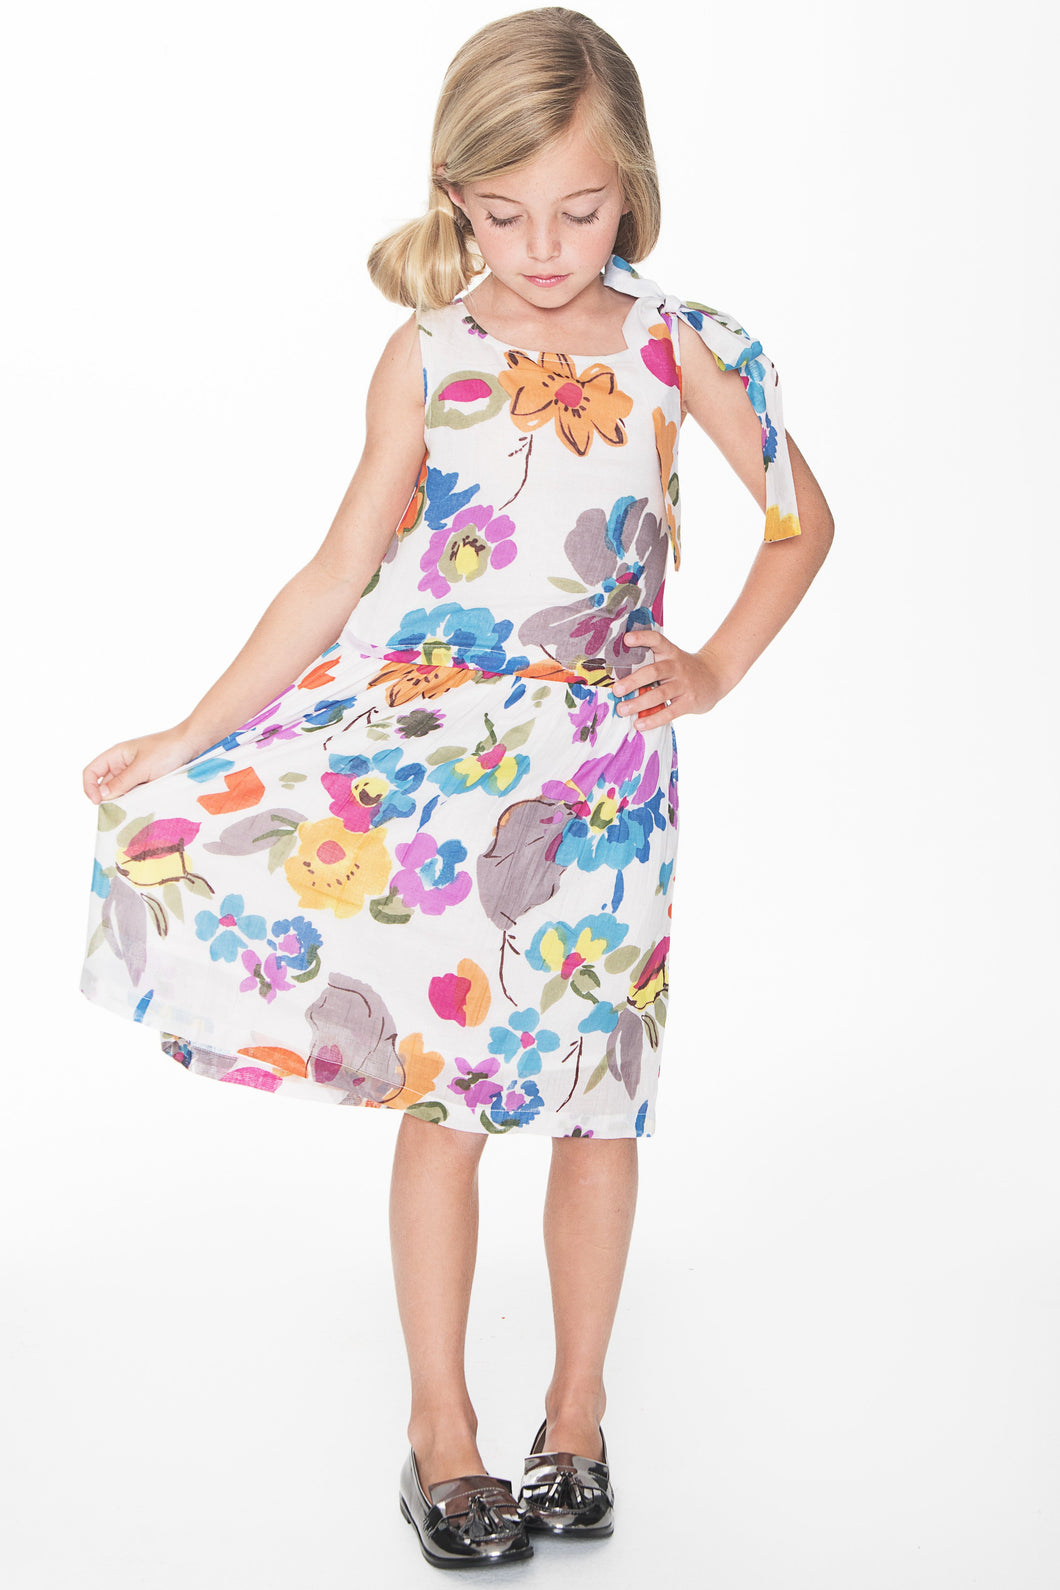 Floral Tie-Dress - Kids Clothing, Dress - Girls Dress, Yo Baby Online - Yo Baby